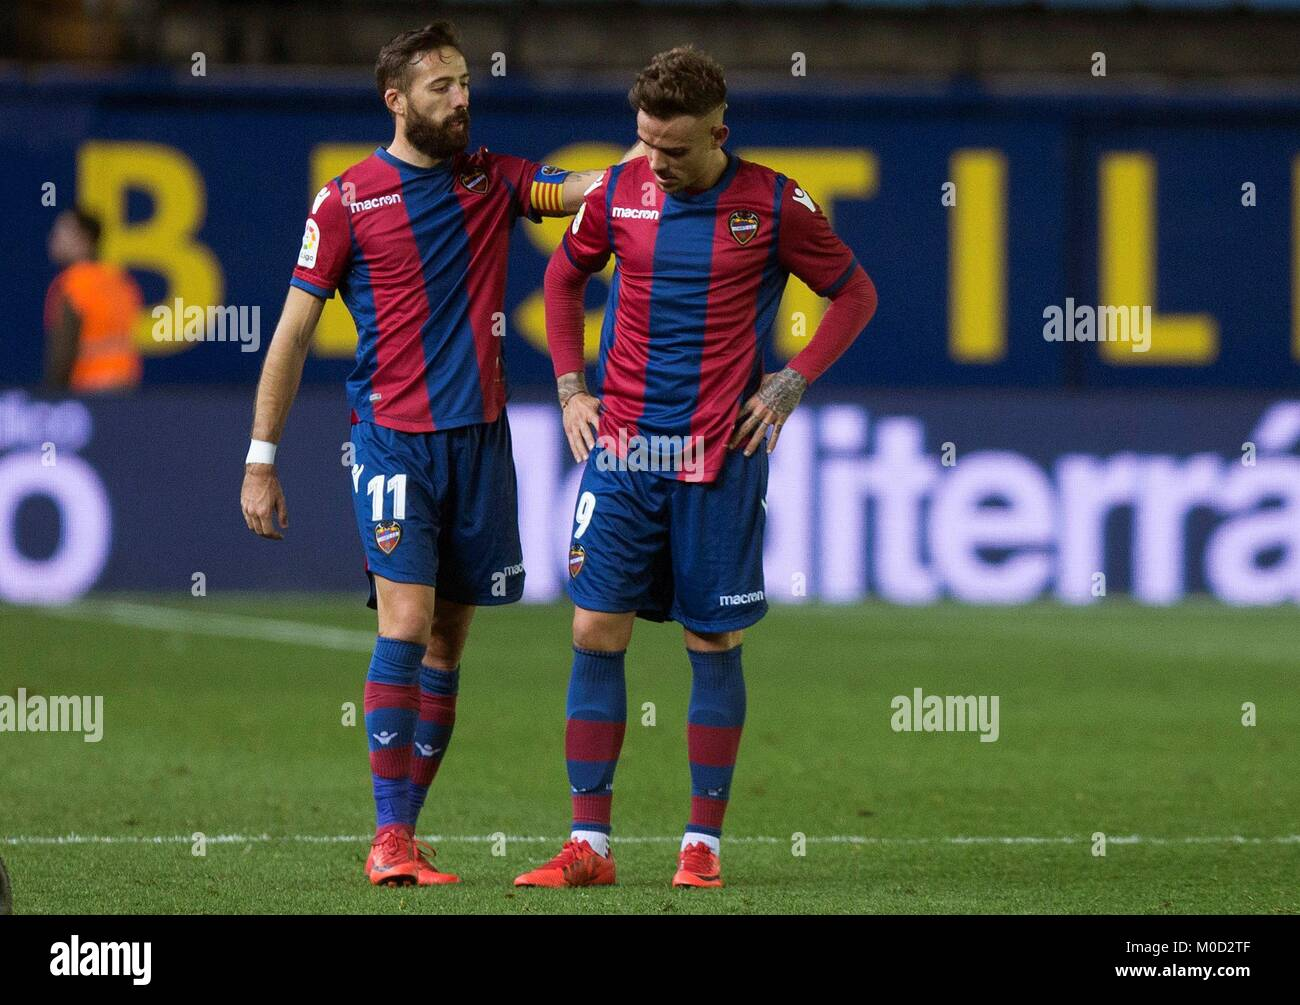 Levante's players Jose Luis Morales (L) and Roger Marti (R) during Stock  Photo - Alamy